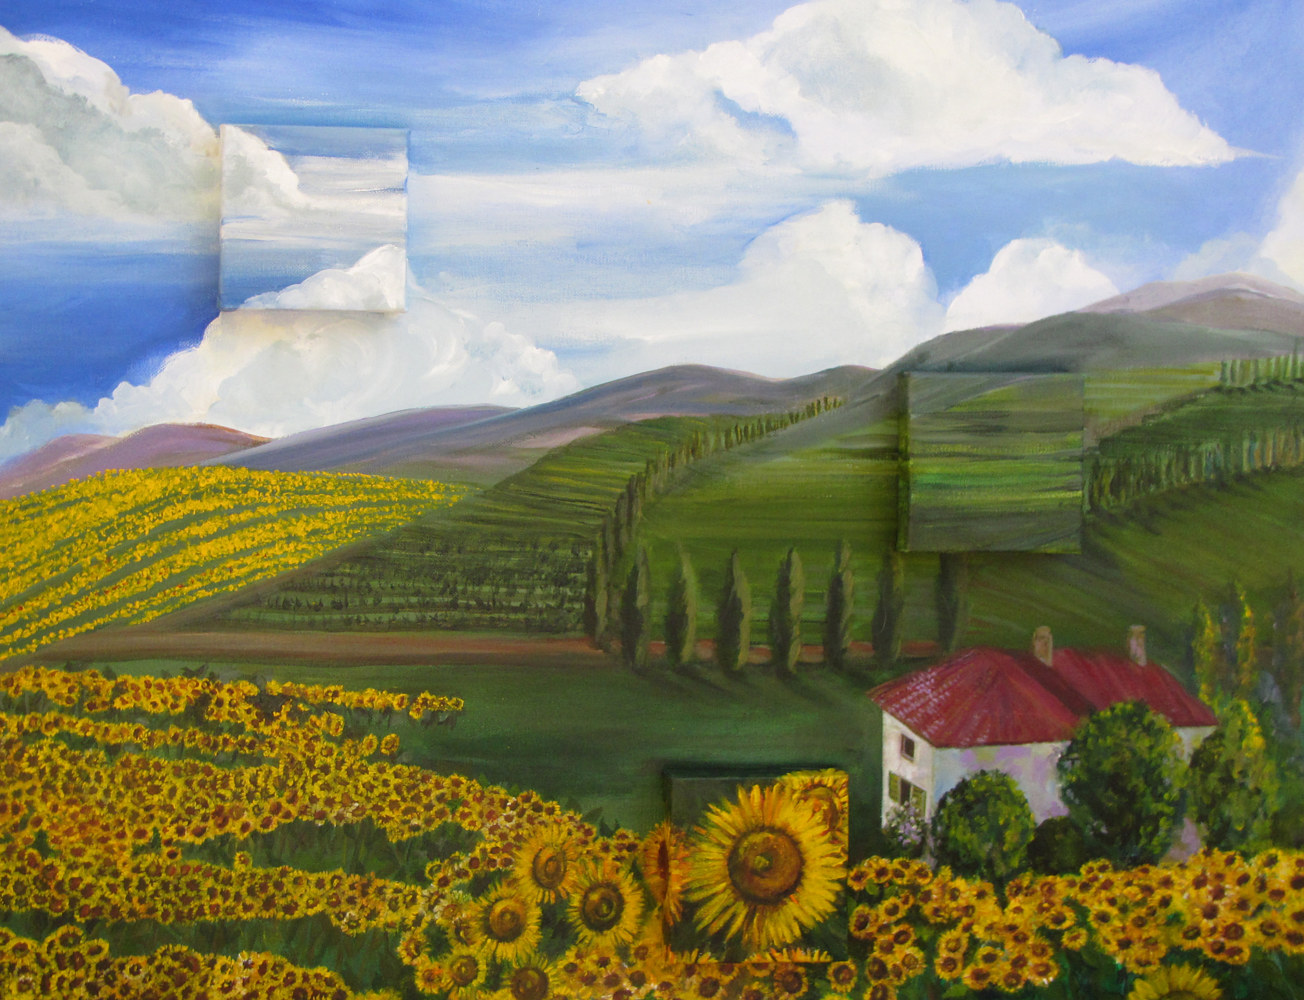 Acrylic painting Tuscany 3D by Terry Joseph